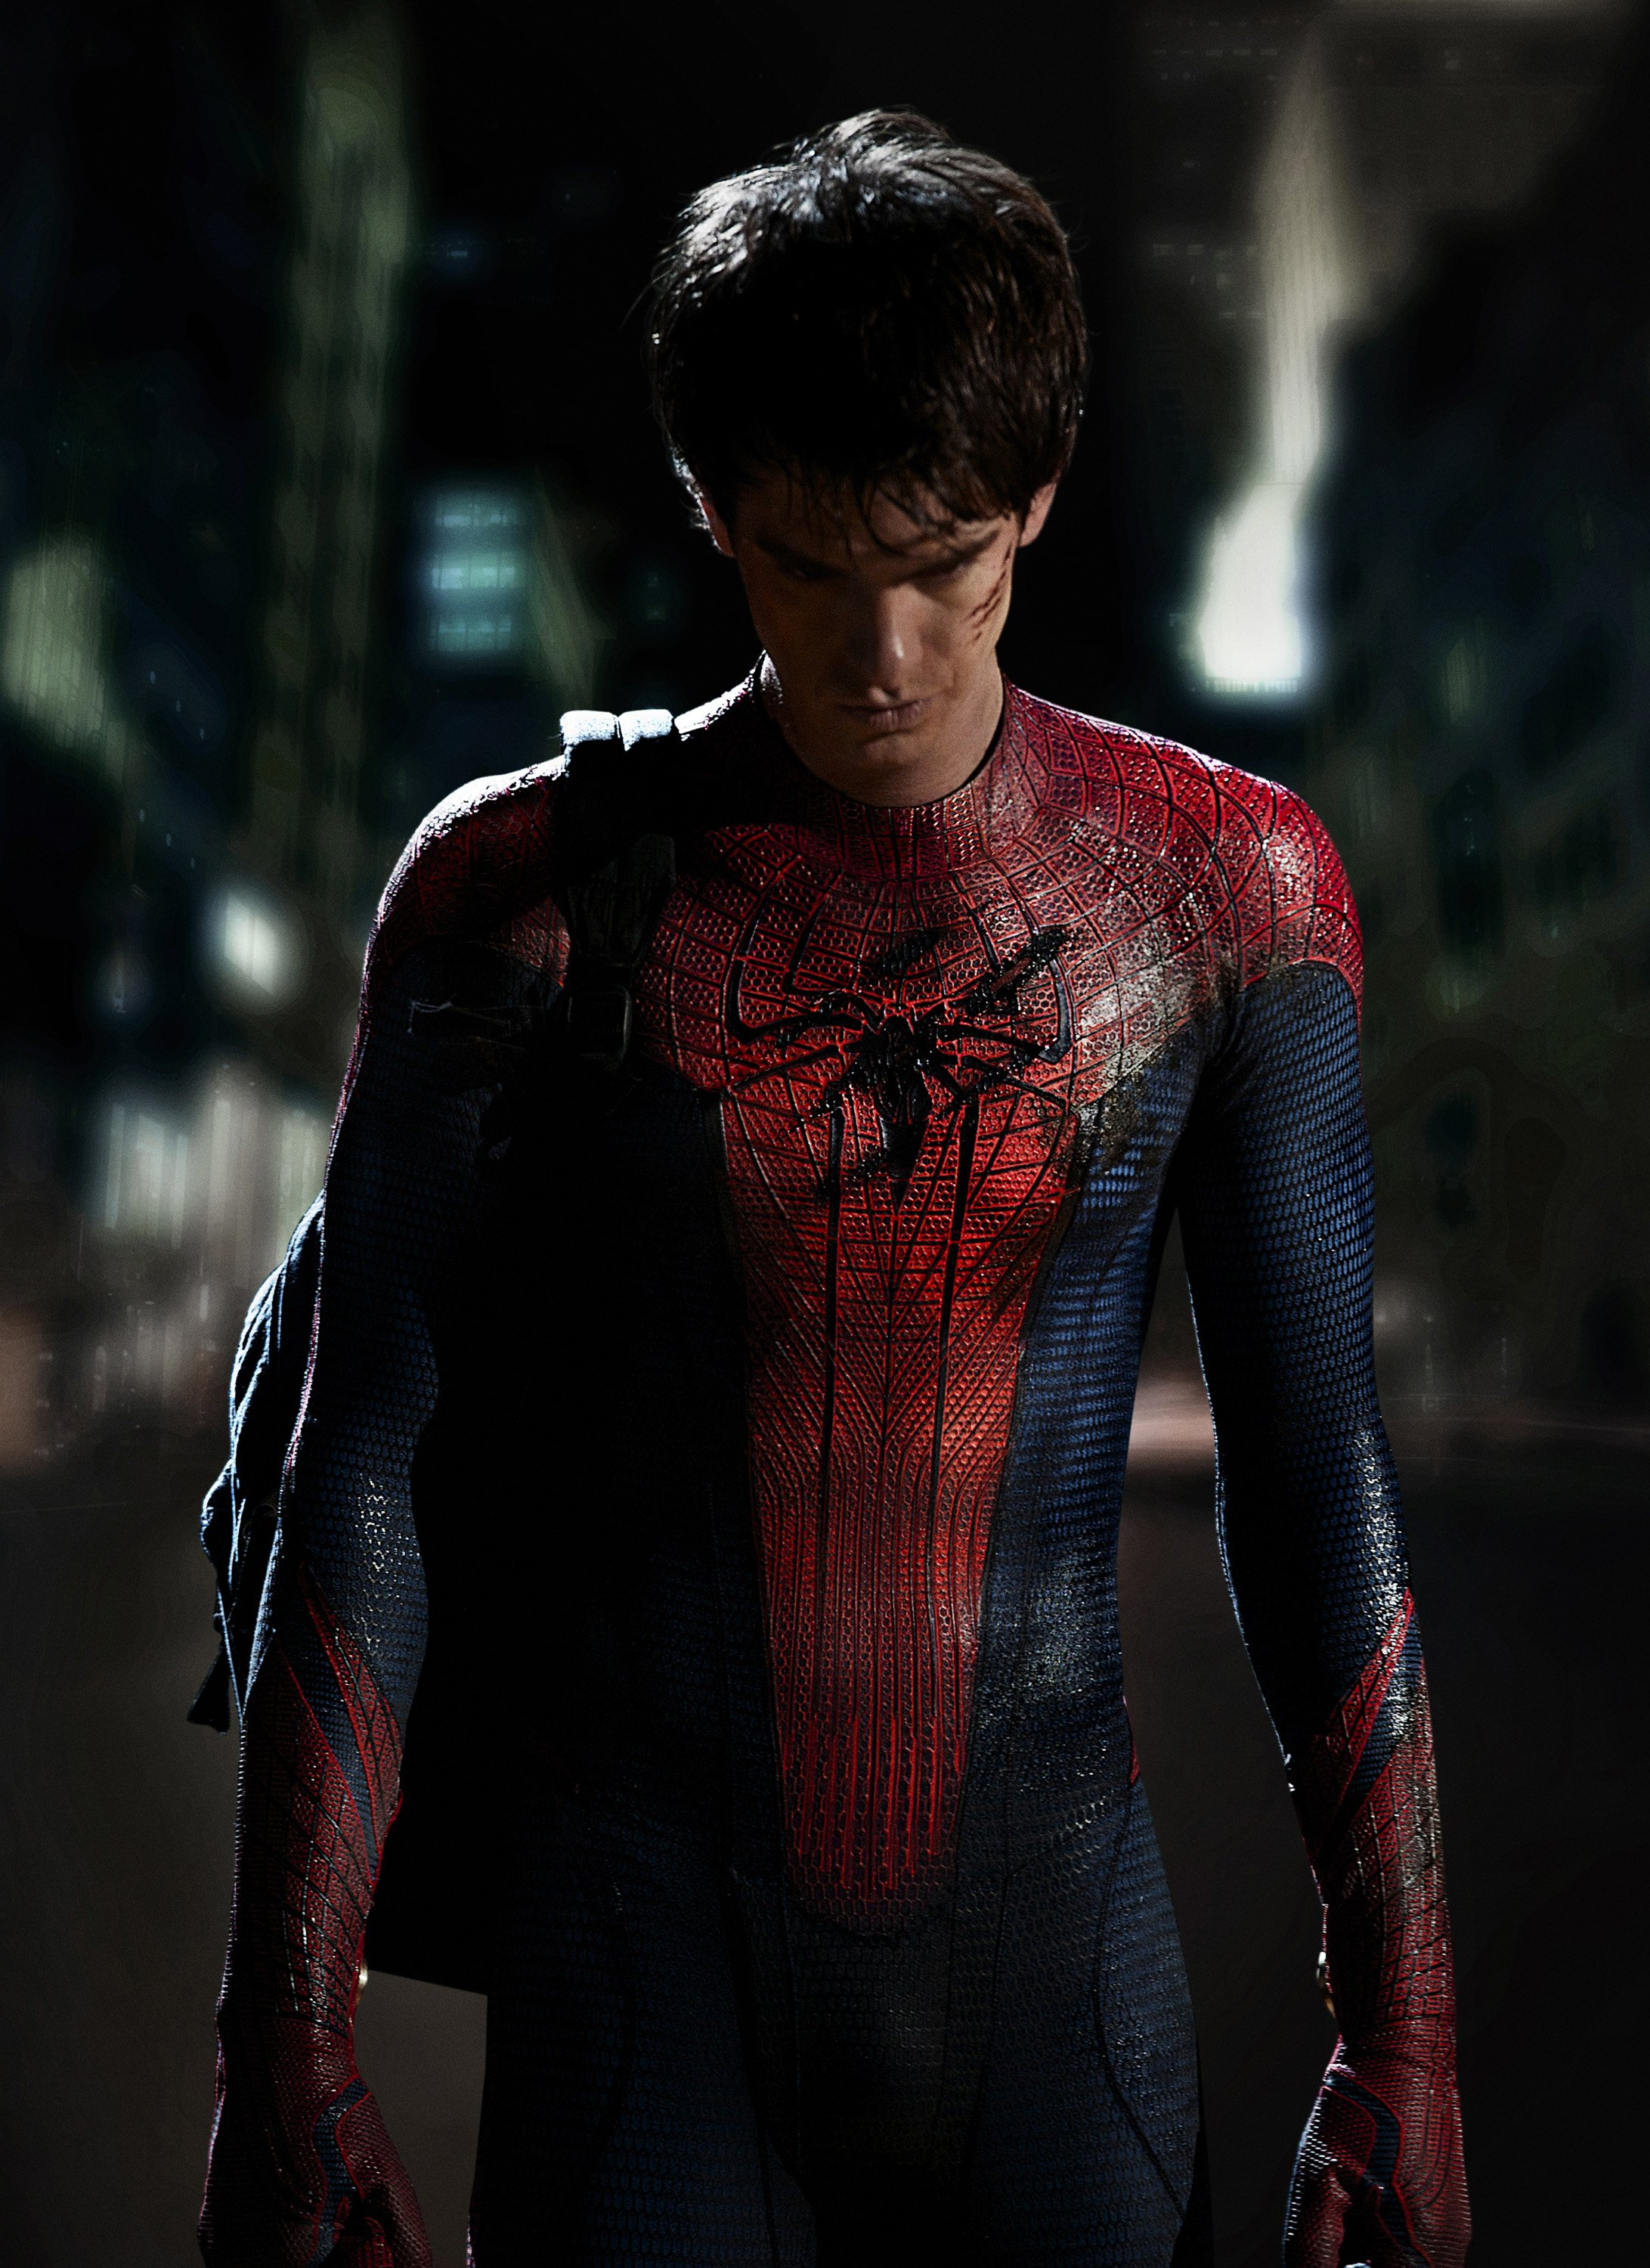 """Actor Andrew Garfield as Spider-Man in """"The Amazing Spider-Man 2""""   Photo: John Schwartzman/Columbia Pictures Industries, Inc. via Getty Images"""